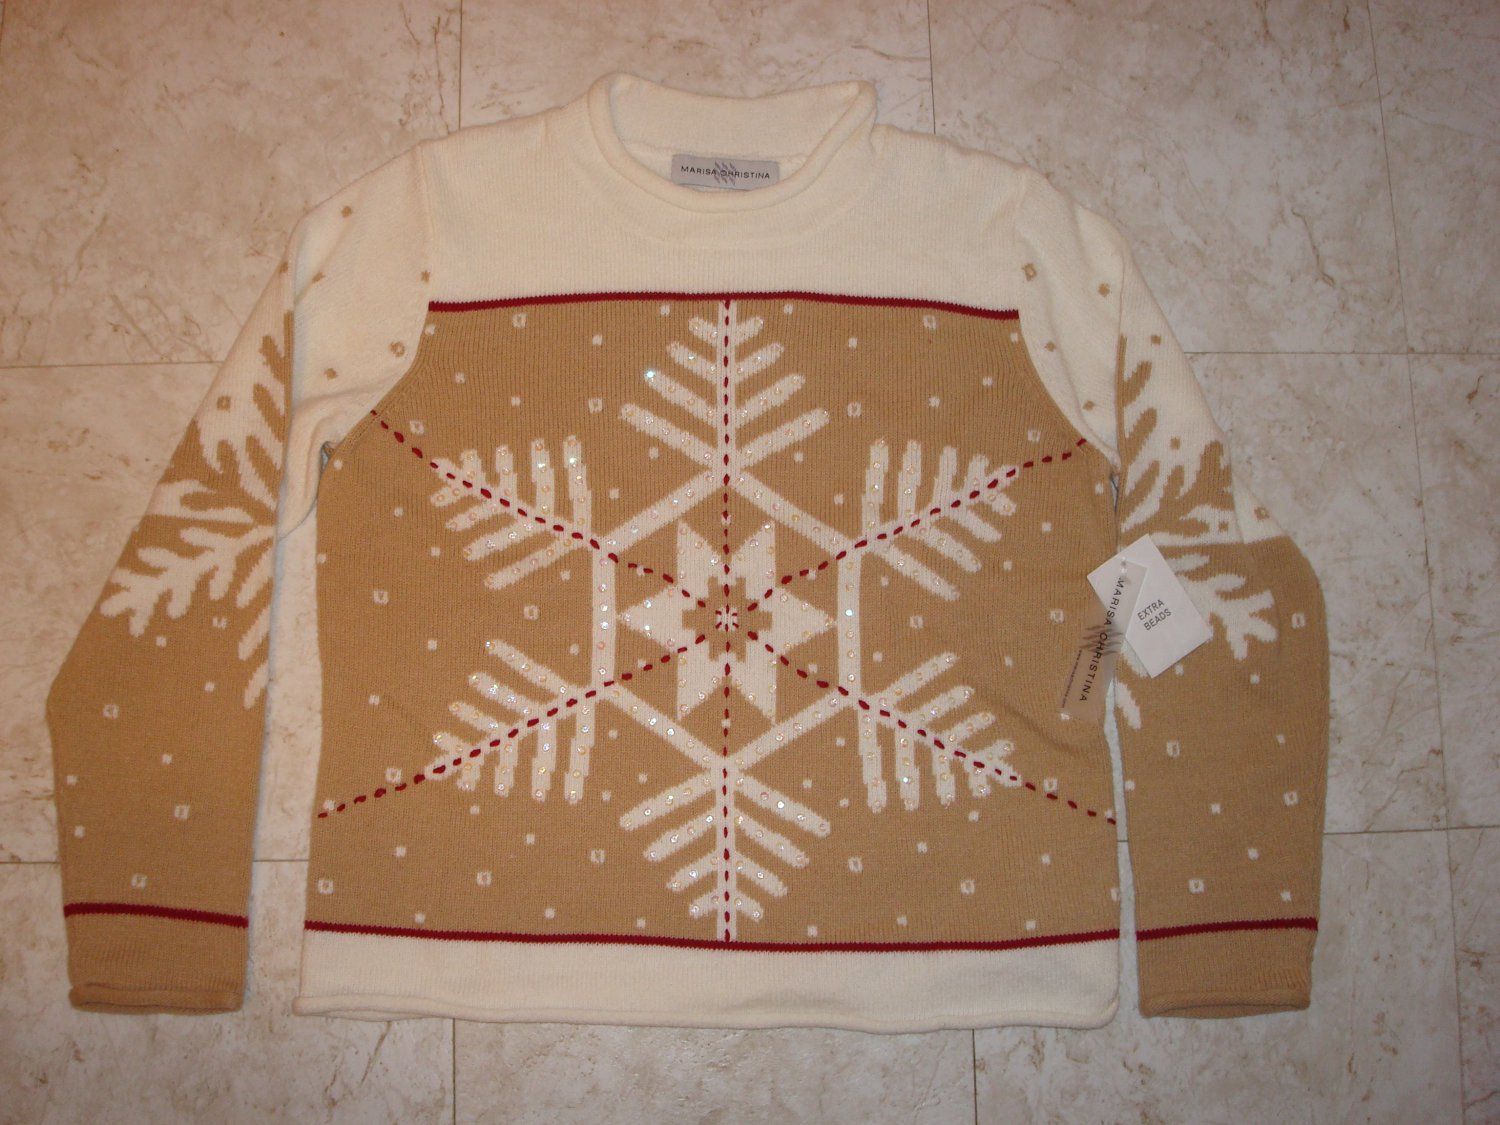 Marisa Christina Sweater Small Snowflake